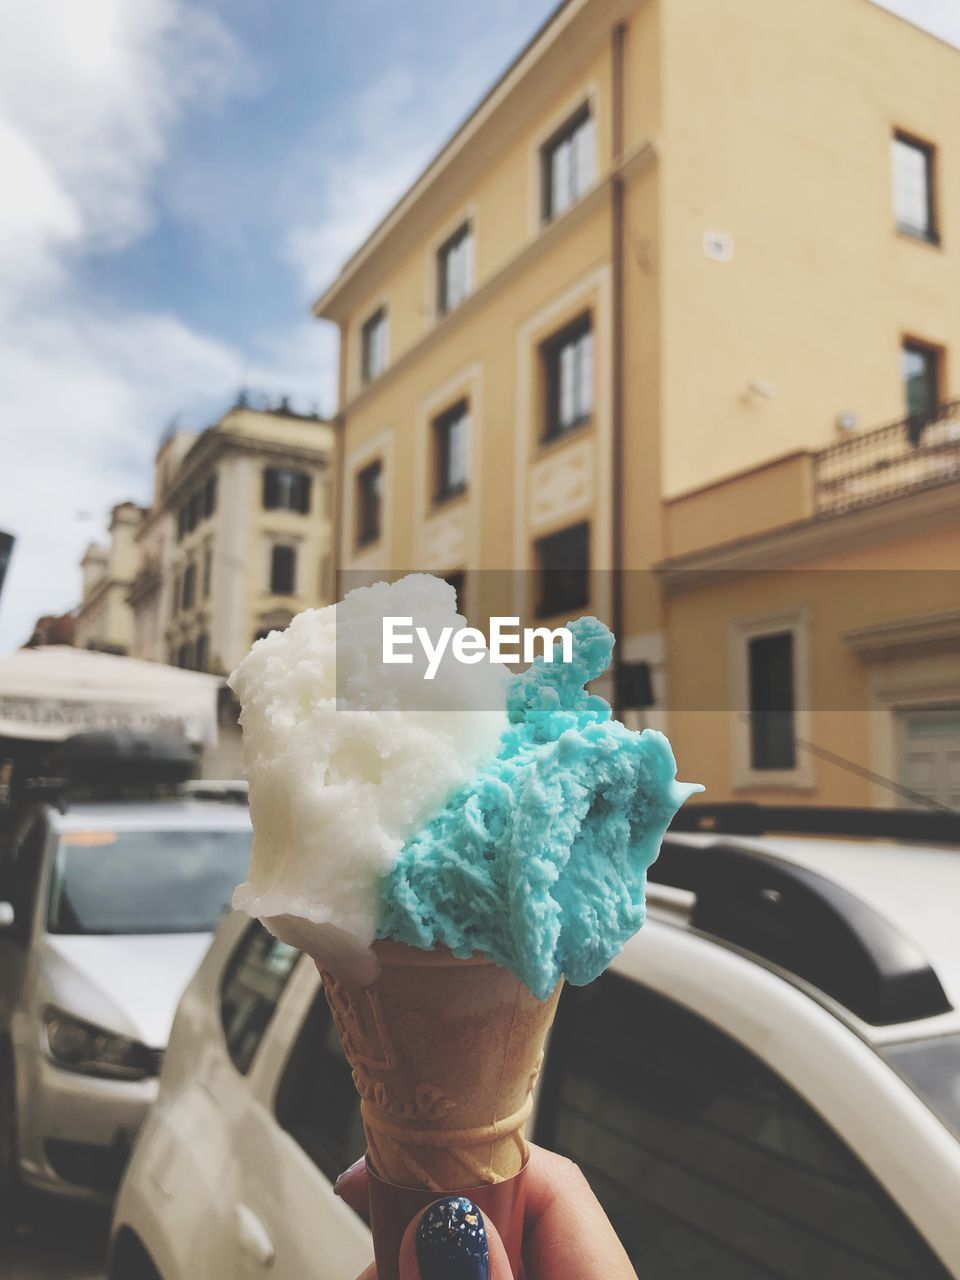 human hand, hand, sweet food, sweet, car, real people, transportation, mode of transportation, holding, human body part, one person, ice cream cone, dairy product, ice cream, motor vehicle, day, building exterior, frozen food, architecture, indulgence, temptation, outdoors, finger